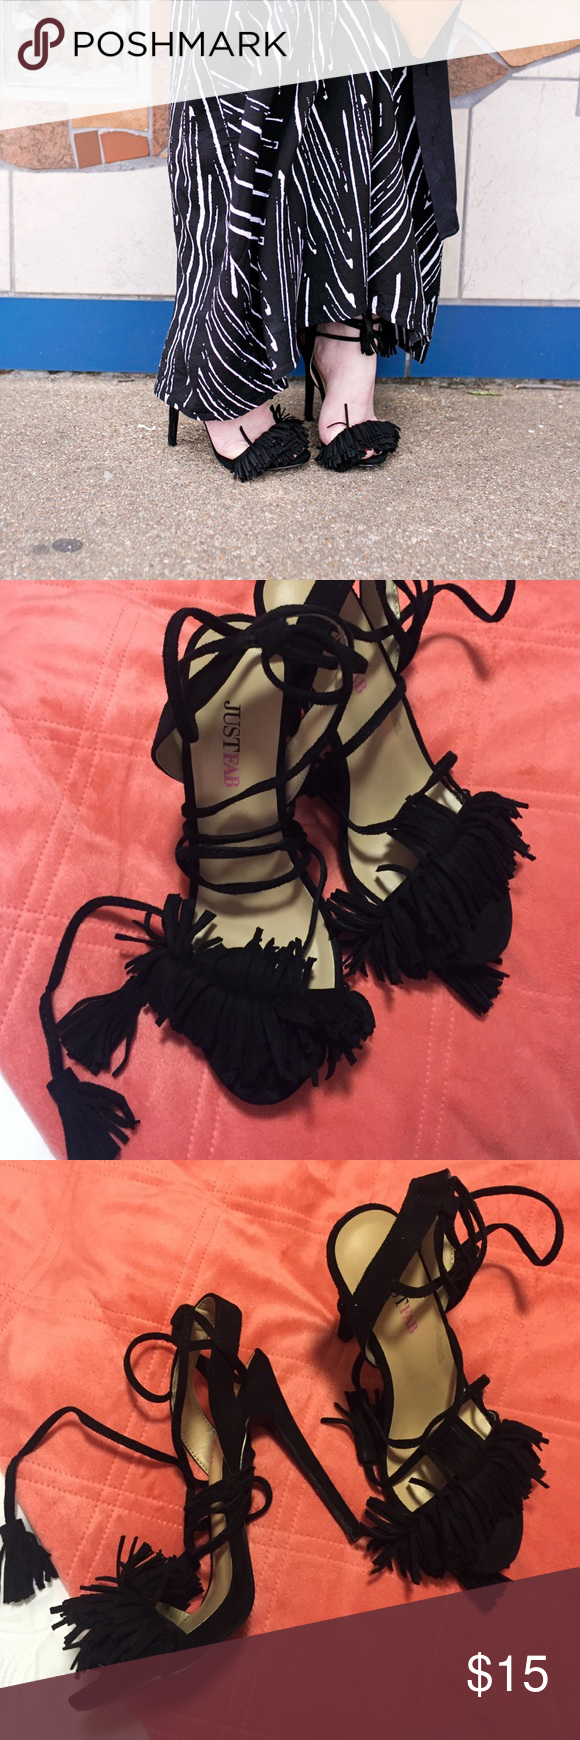 4 inch Lace up Fringe Heels Just Fab (7) Worn 1 time. Just too tall for me. These are the lace up fringe heels that were constantly sold out everywhere. JustFab Shoes Heels